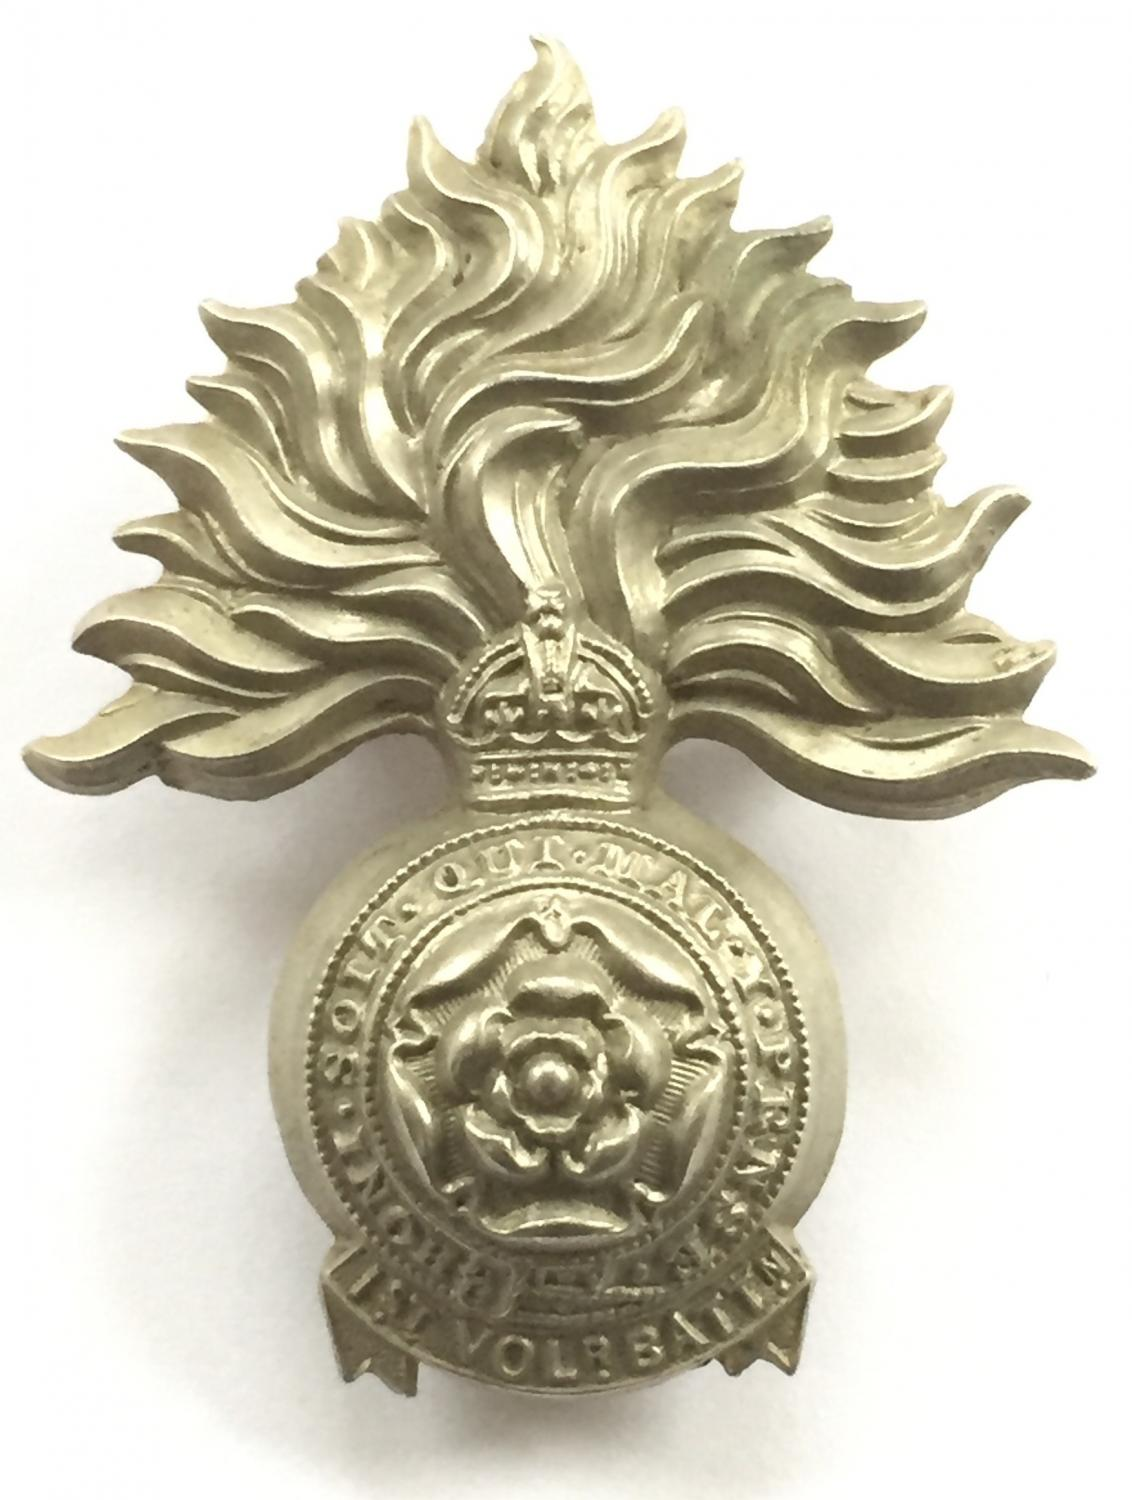 1st VB Royal Fusiliers Edwardian cap badge